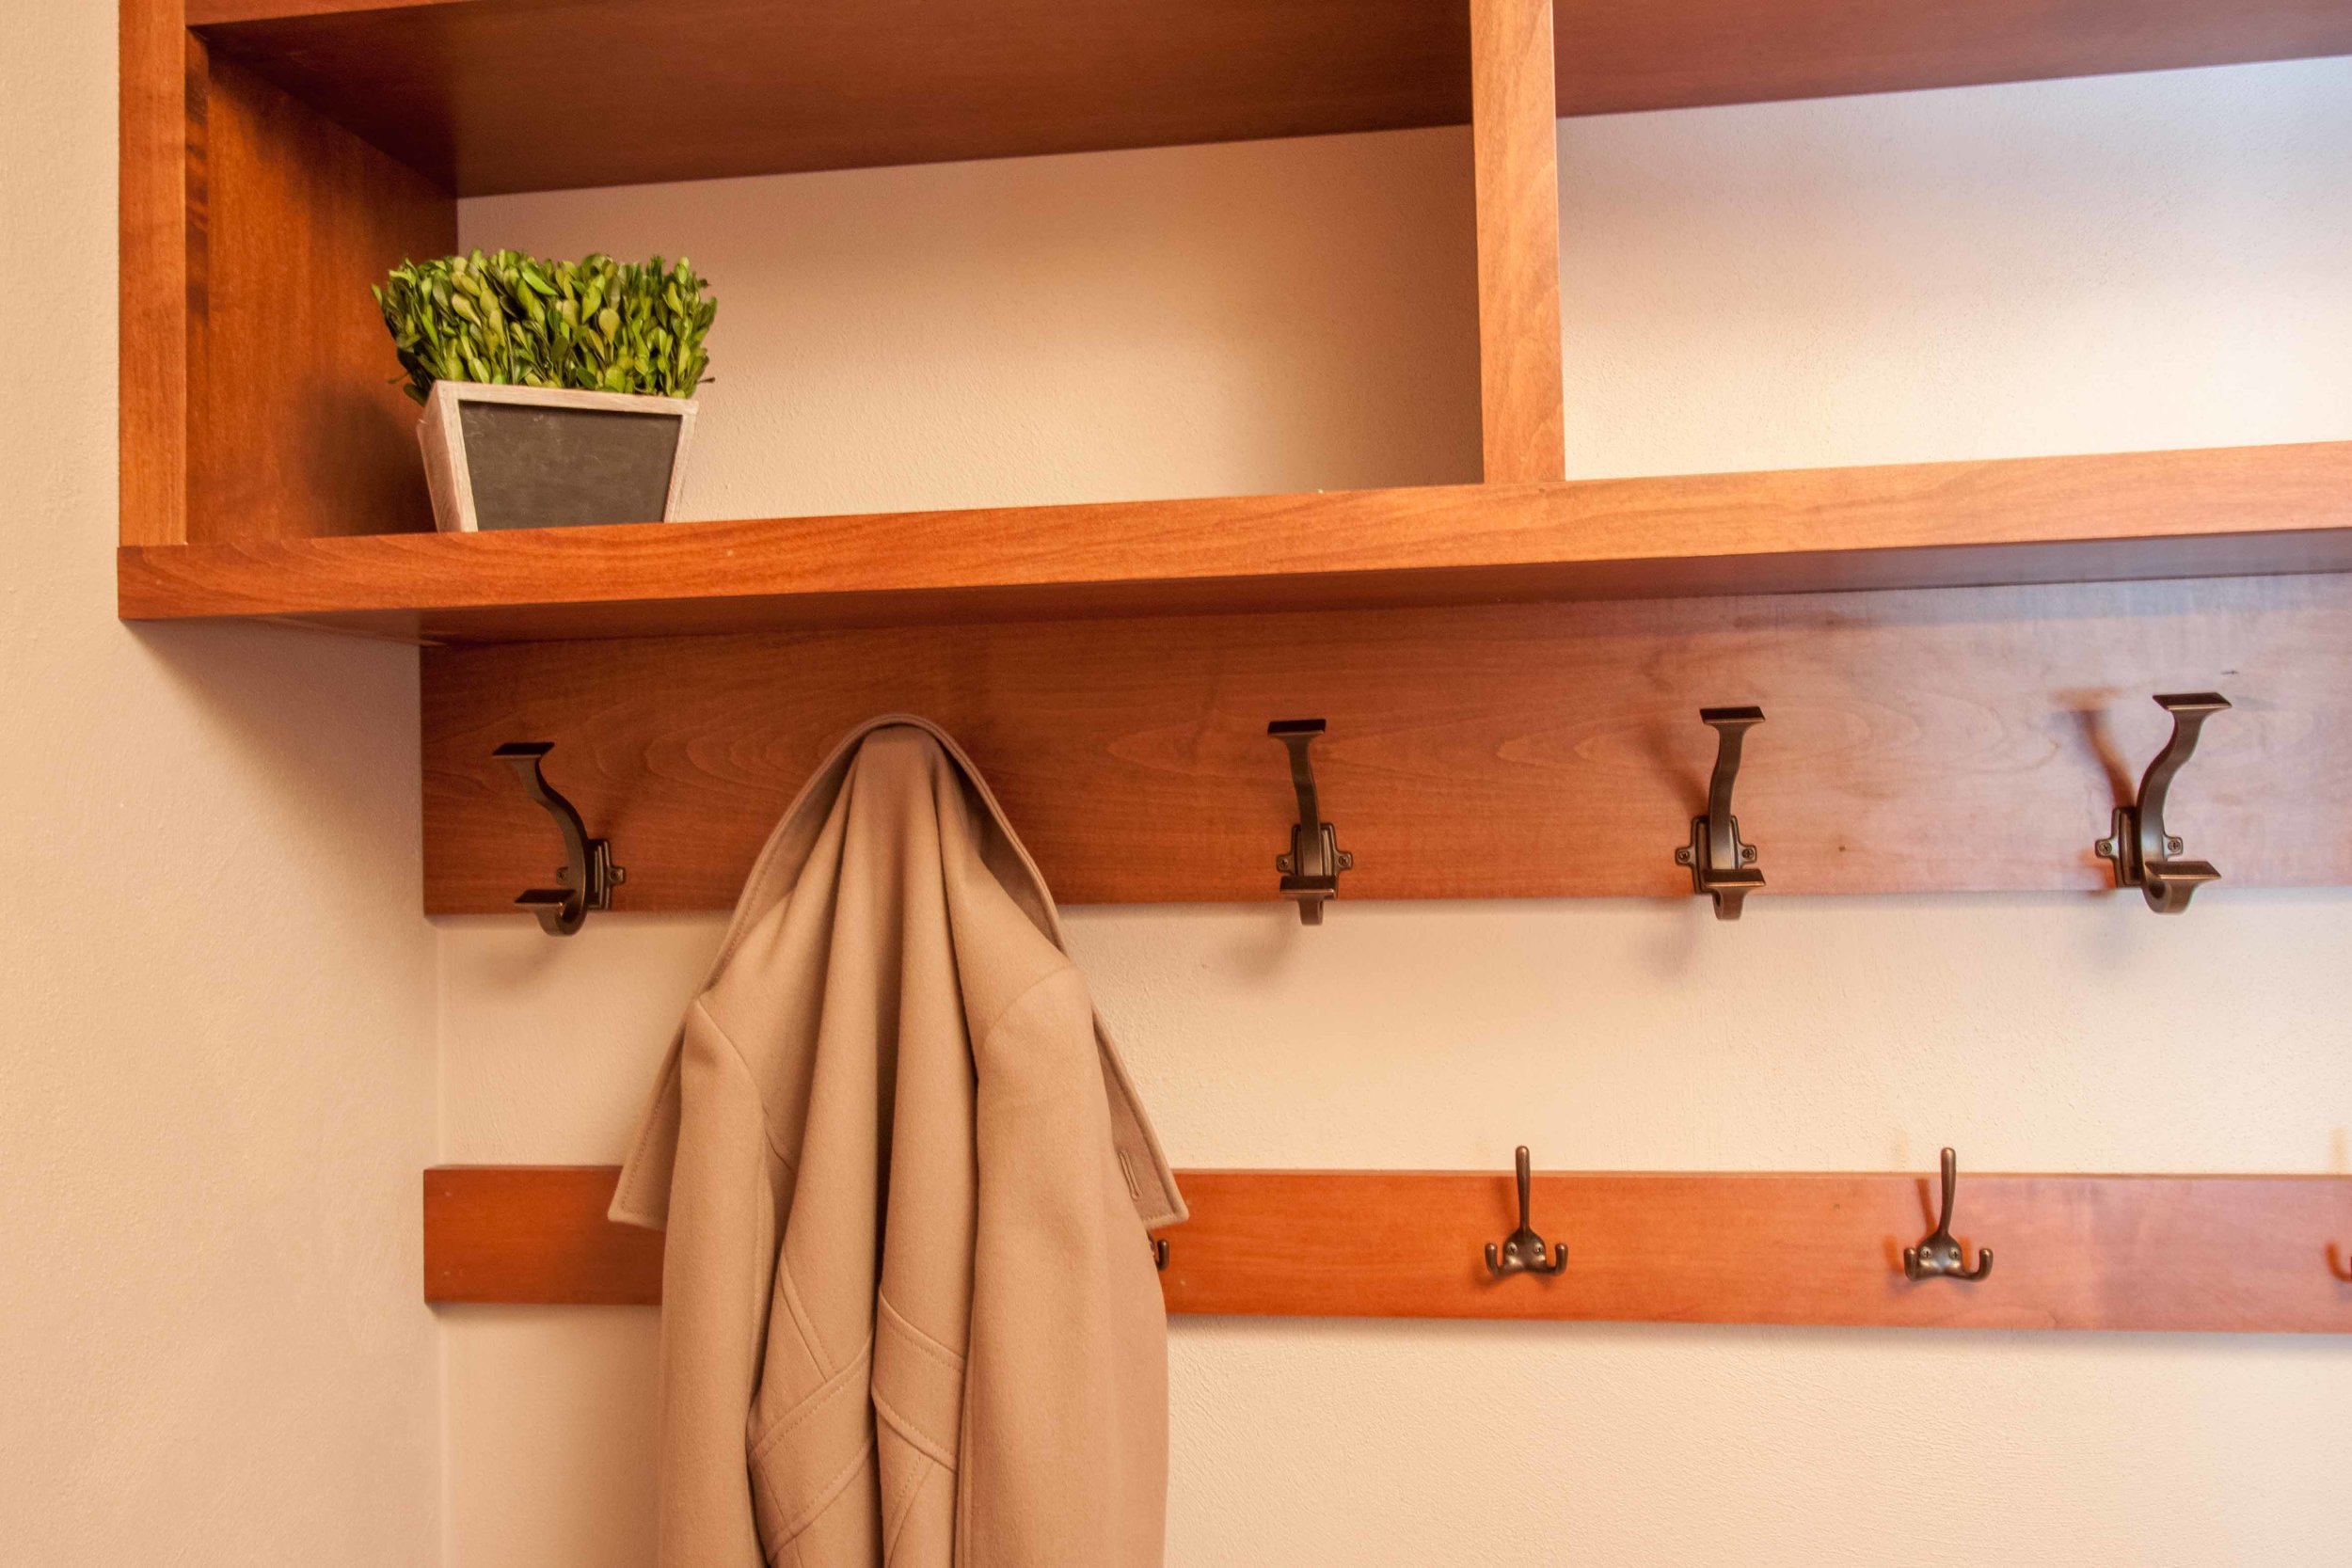 The Mudroom Has Open Storage Including Coat Hooks.